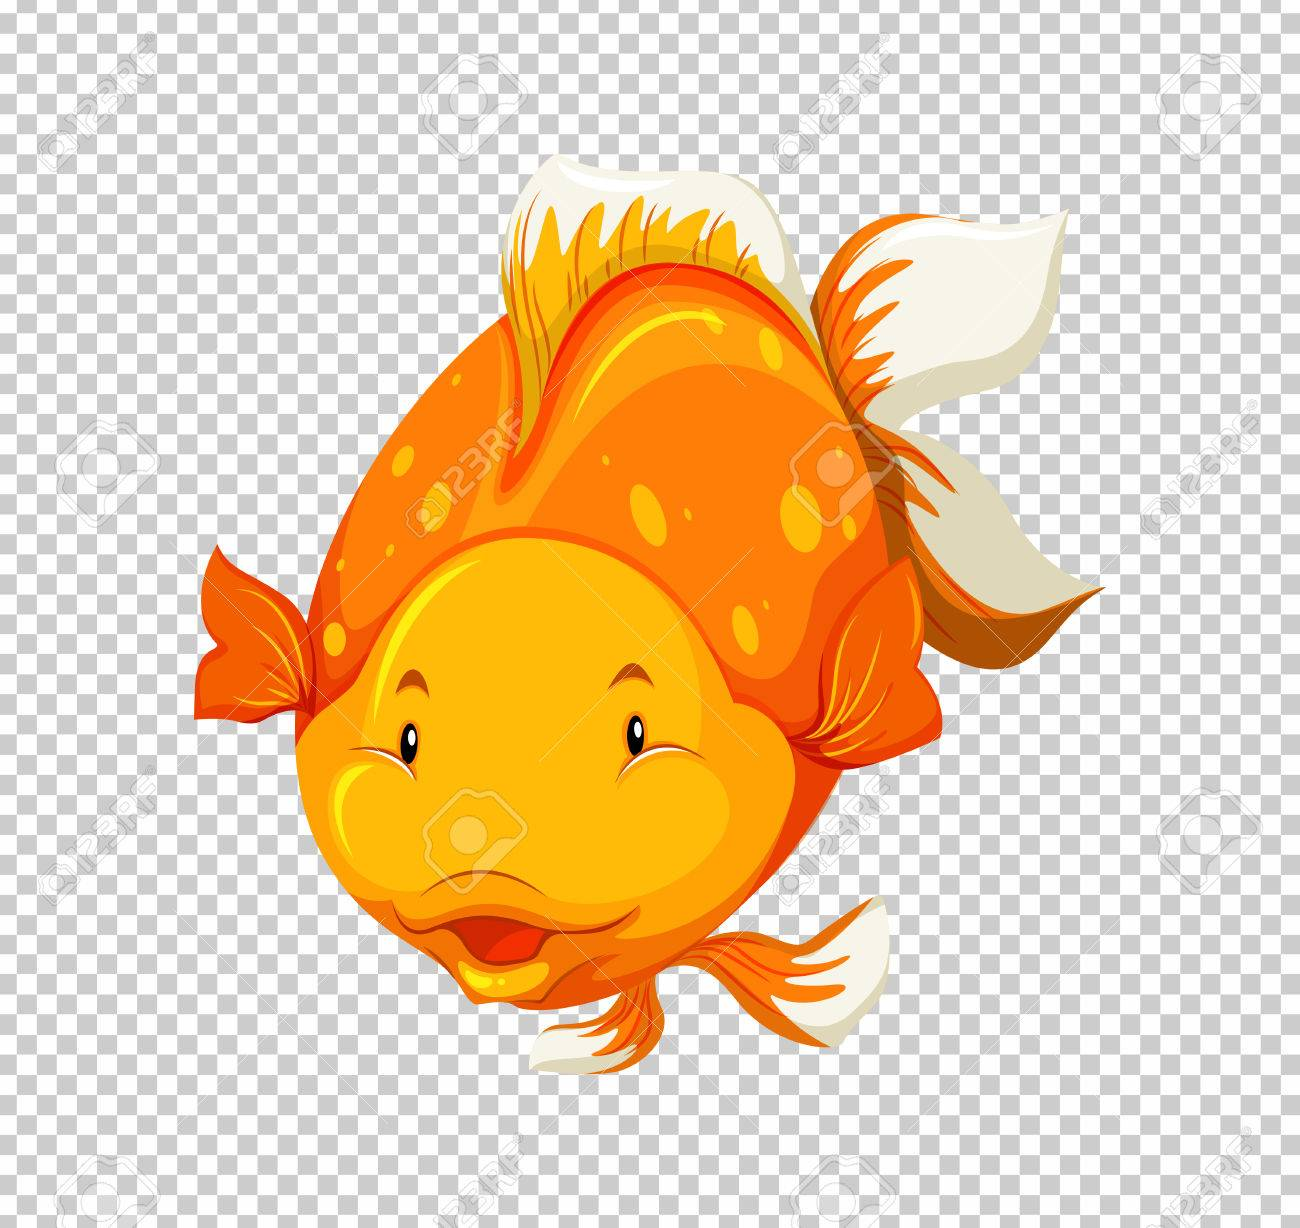 Cute goldfish swimming on transparent background illustration.